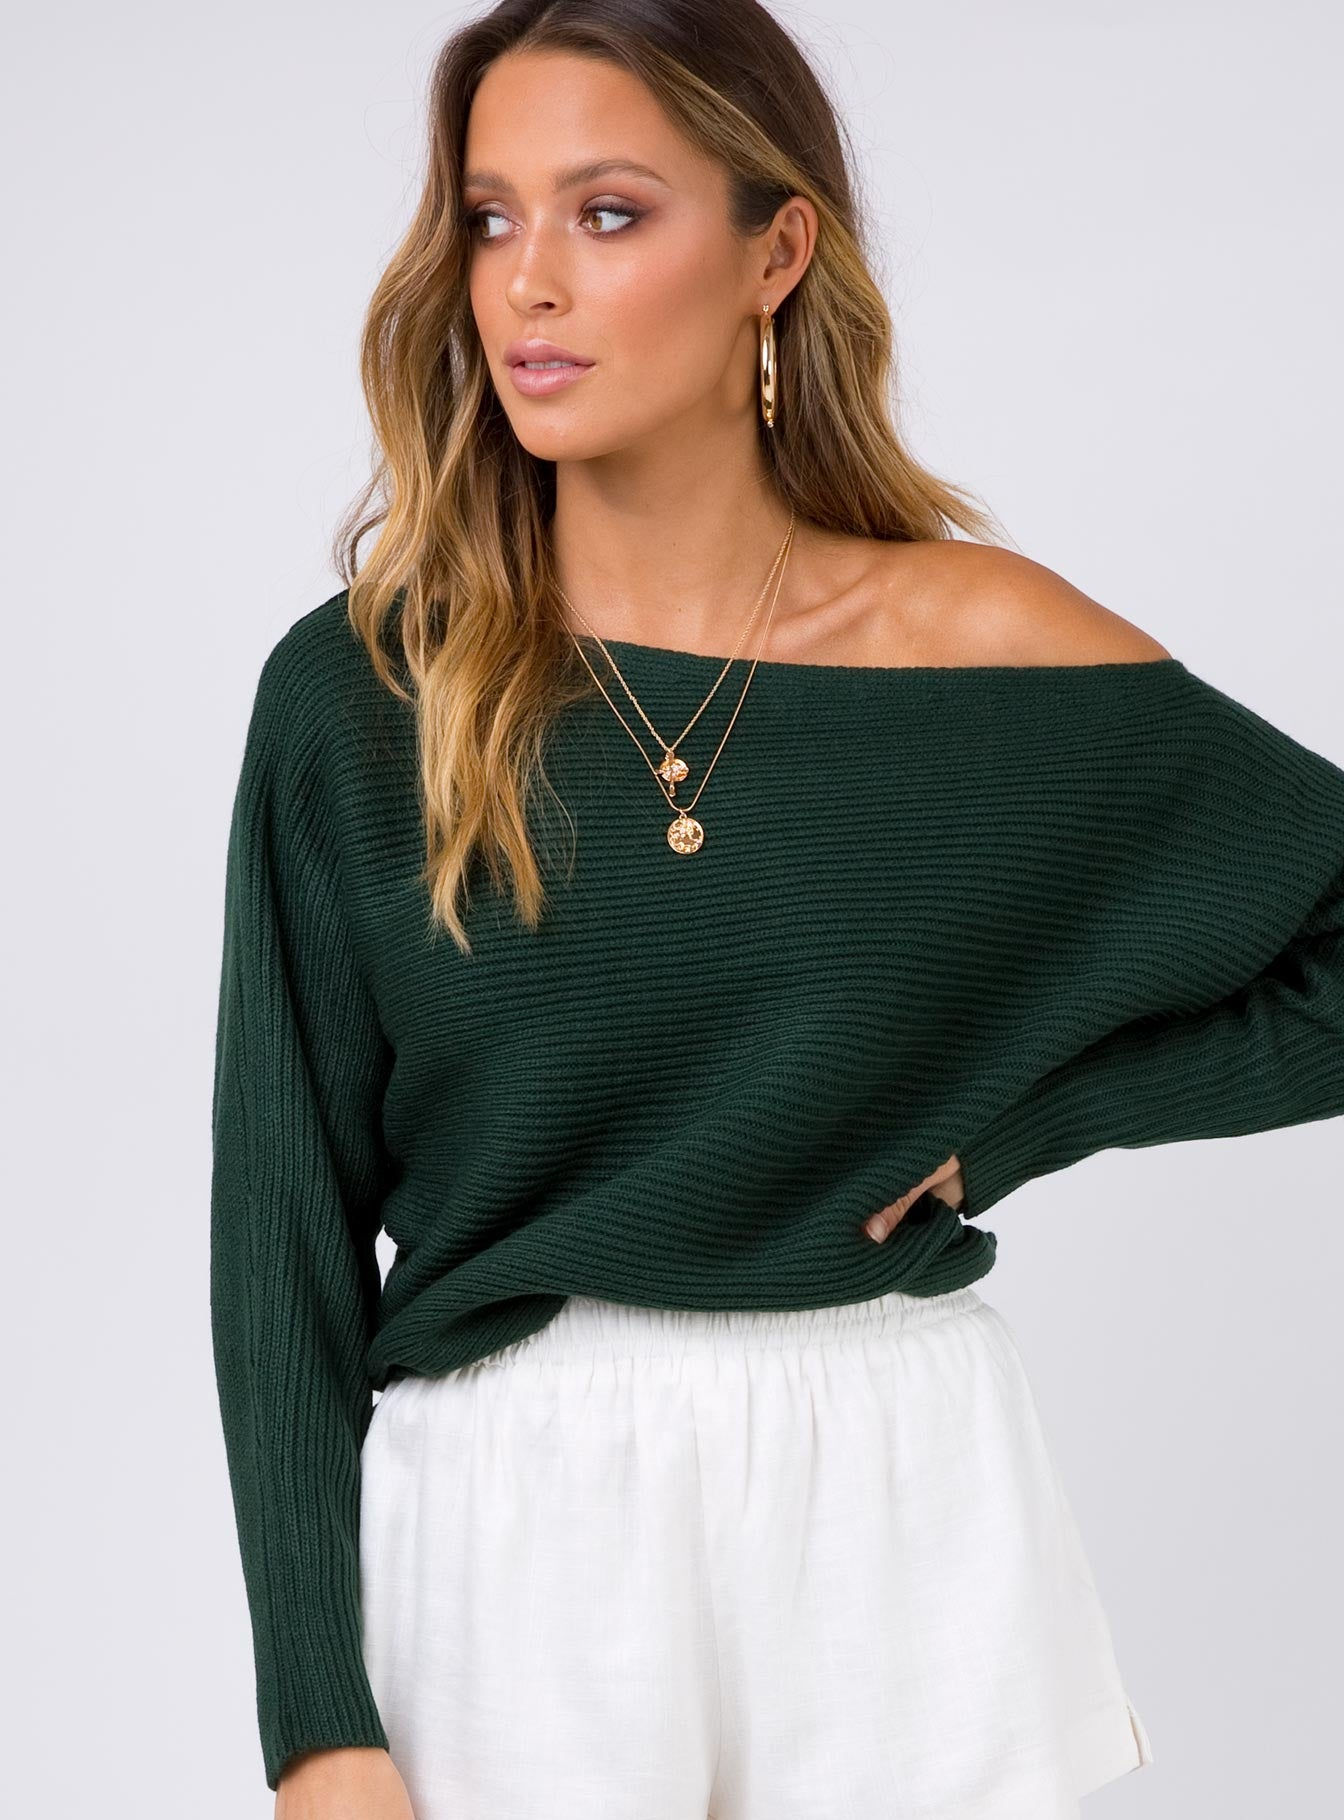 Arizona Light Knit Top Green